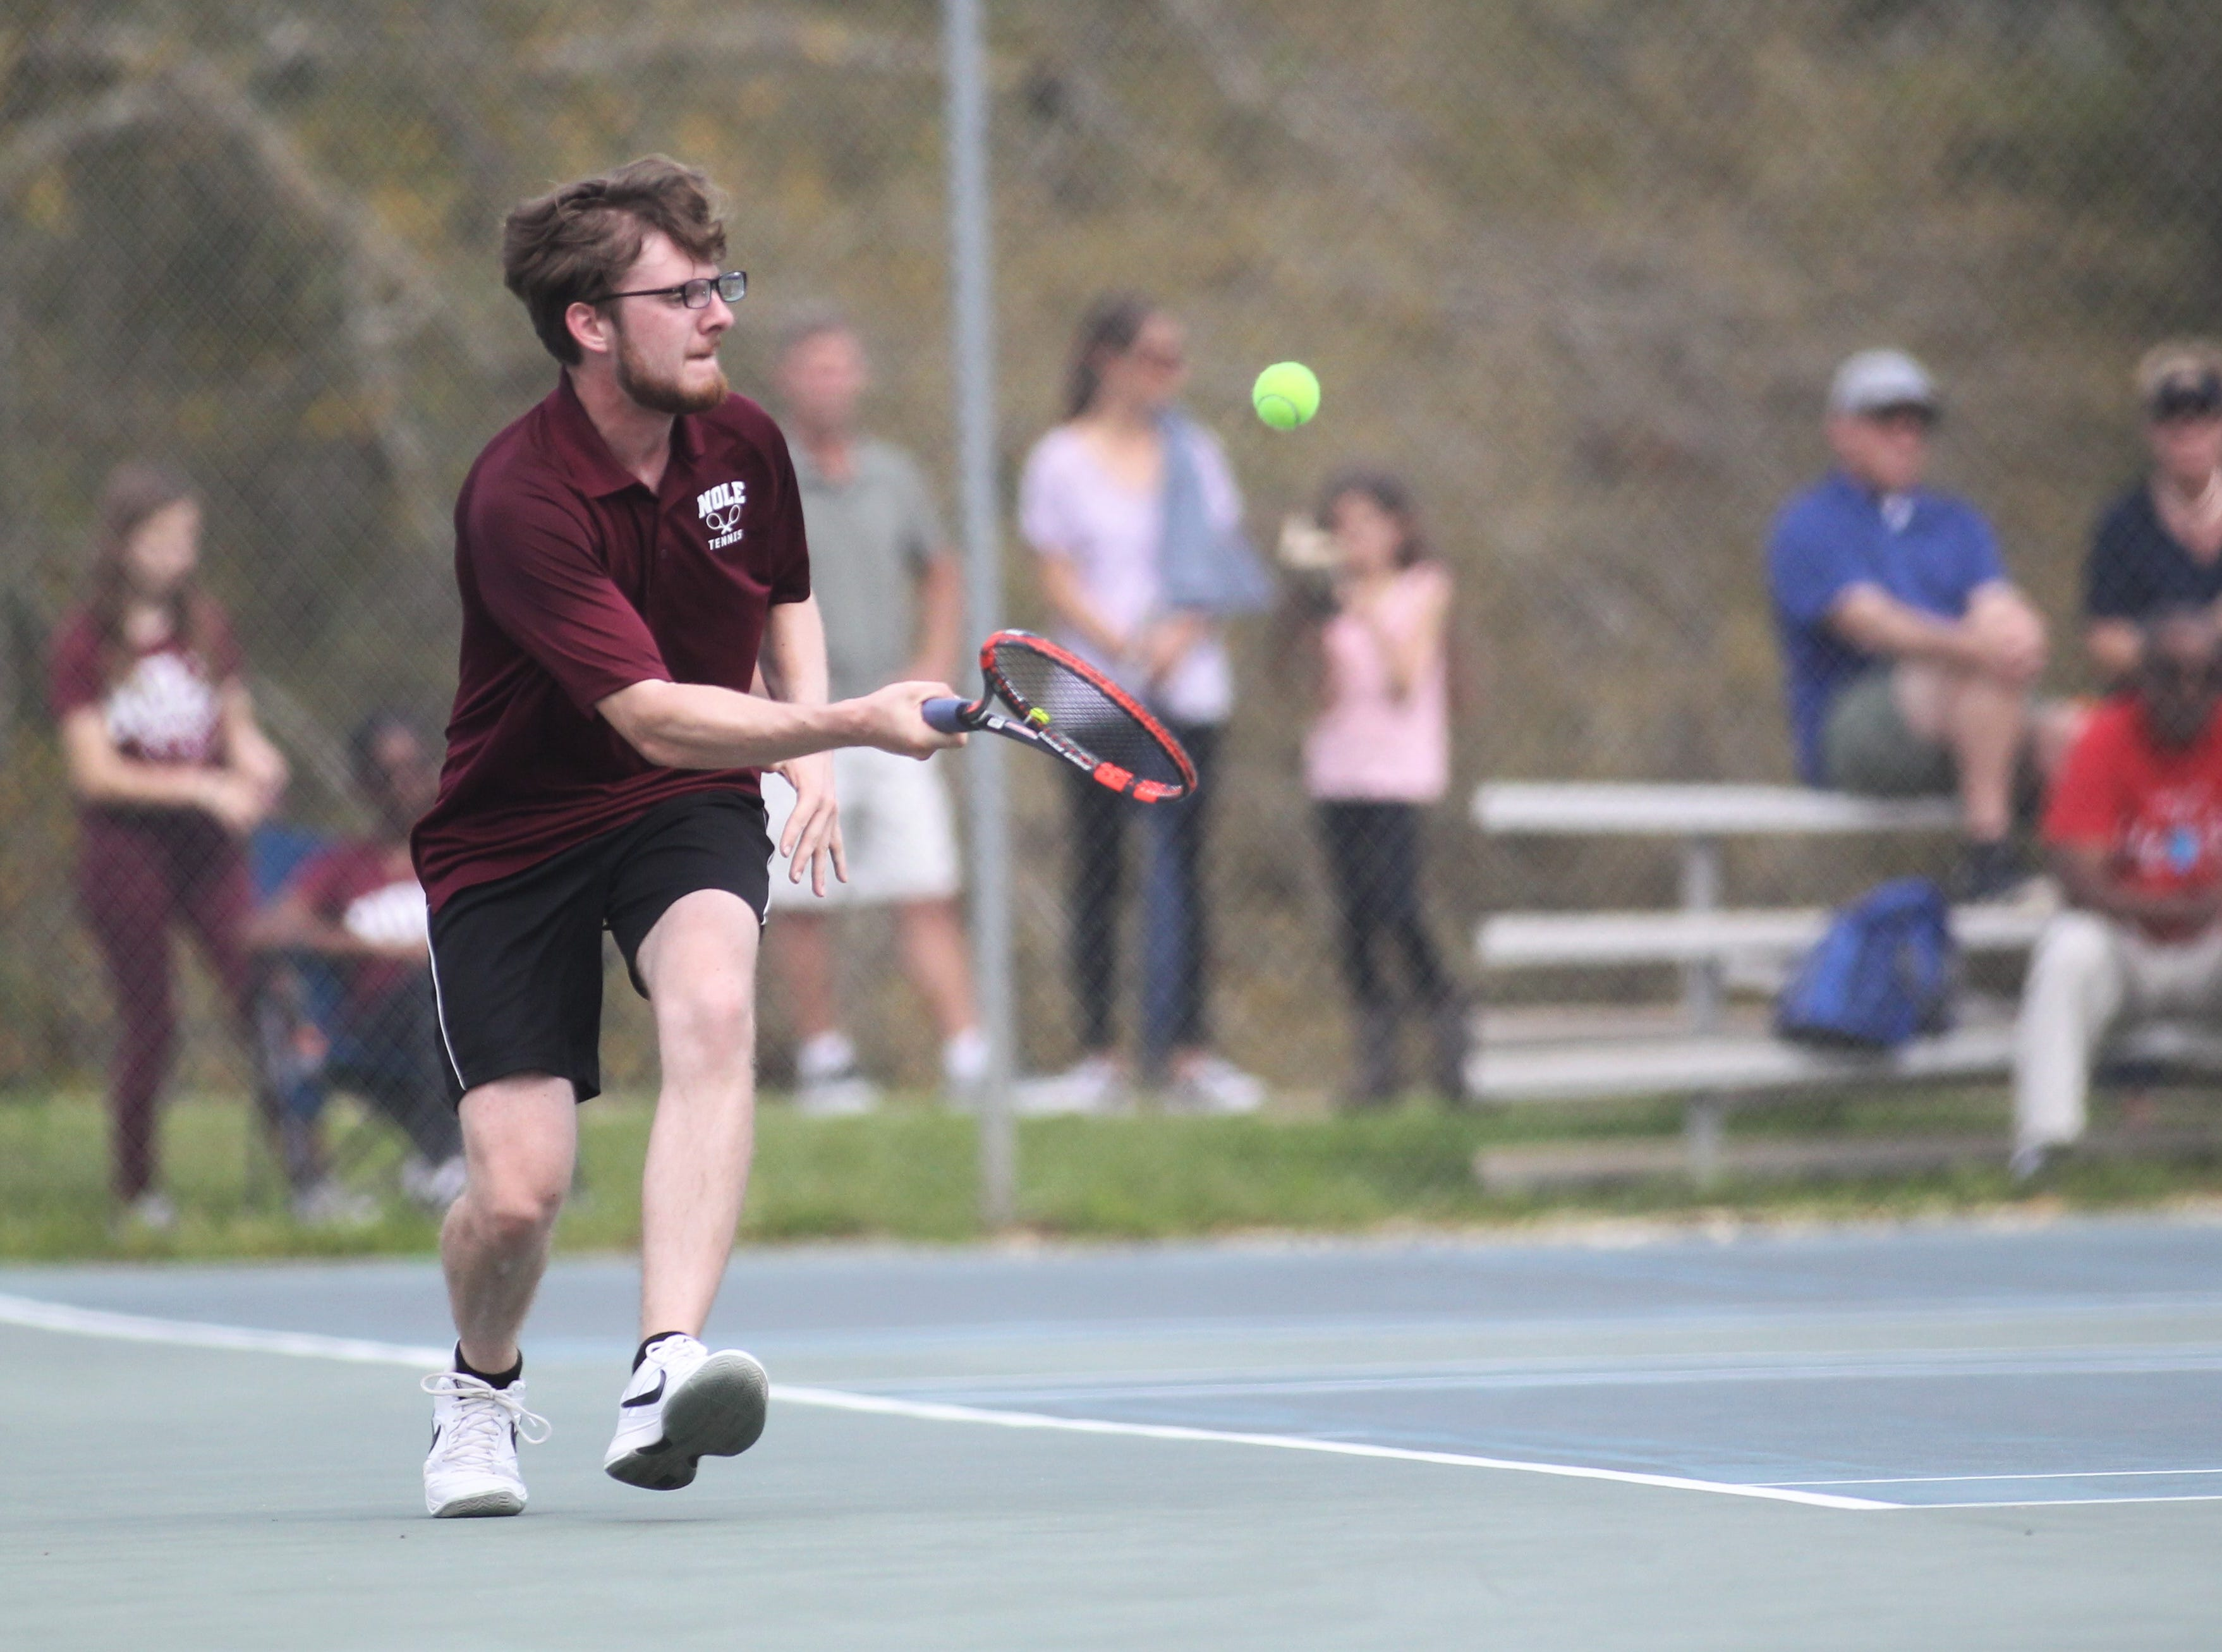 Florida High plays during the high school boys and girls city tennis tournament at Tom Brown Park on Thursday, March 14, 2019.